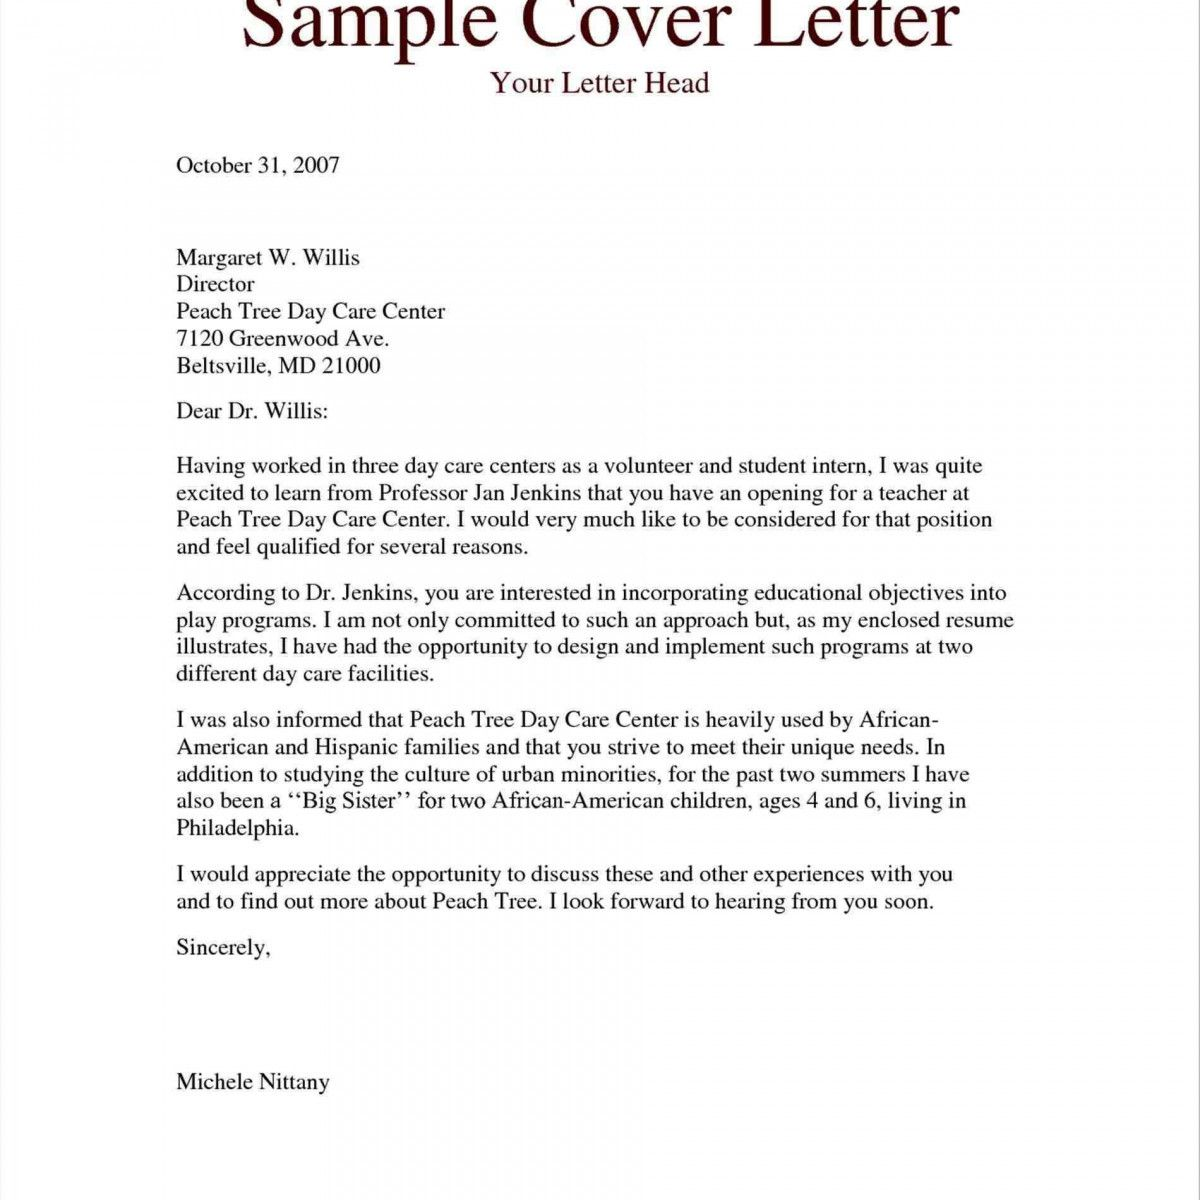 25 Sample Cover Letter For Teacher Assistant Resume With No Experience Awesome